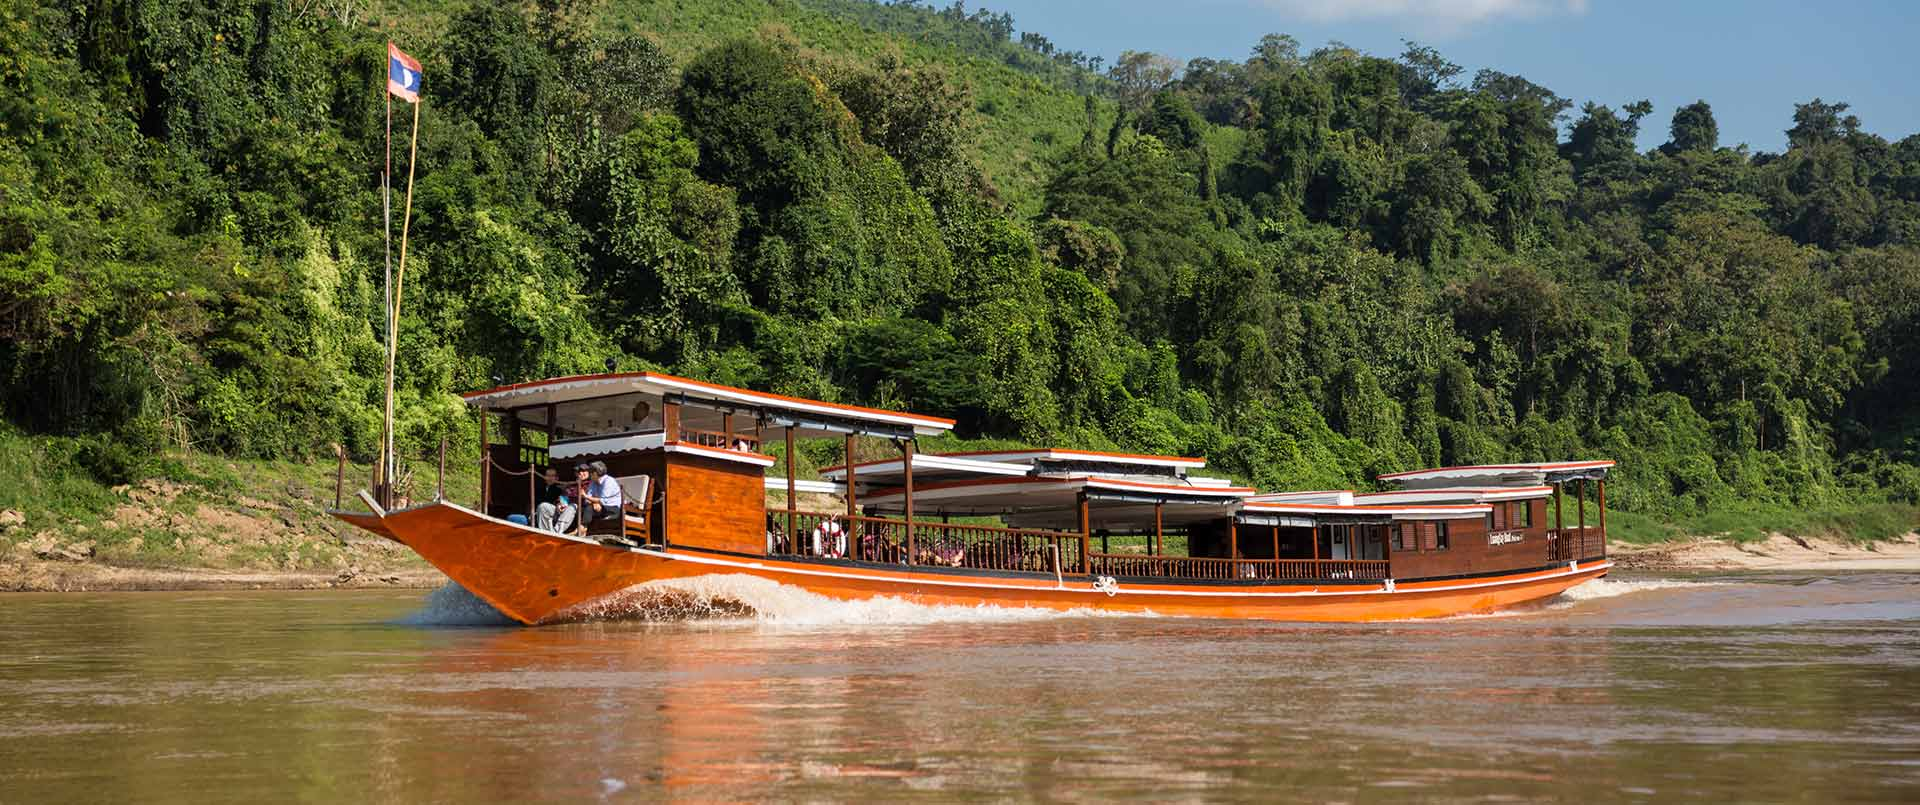 Luang Say River Cruise